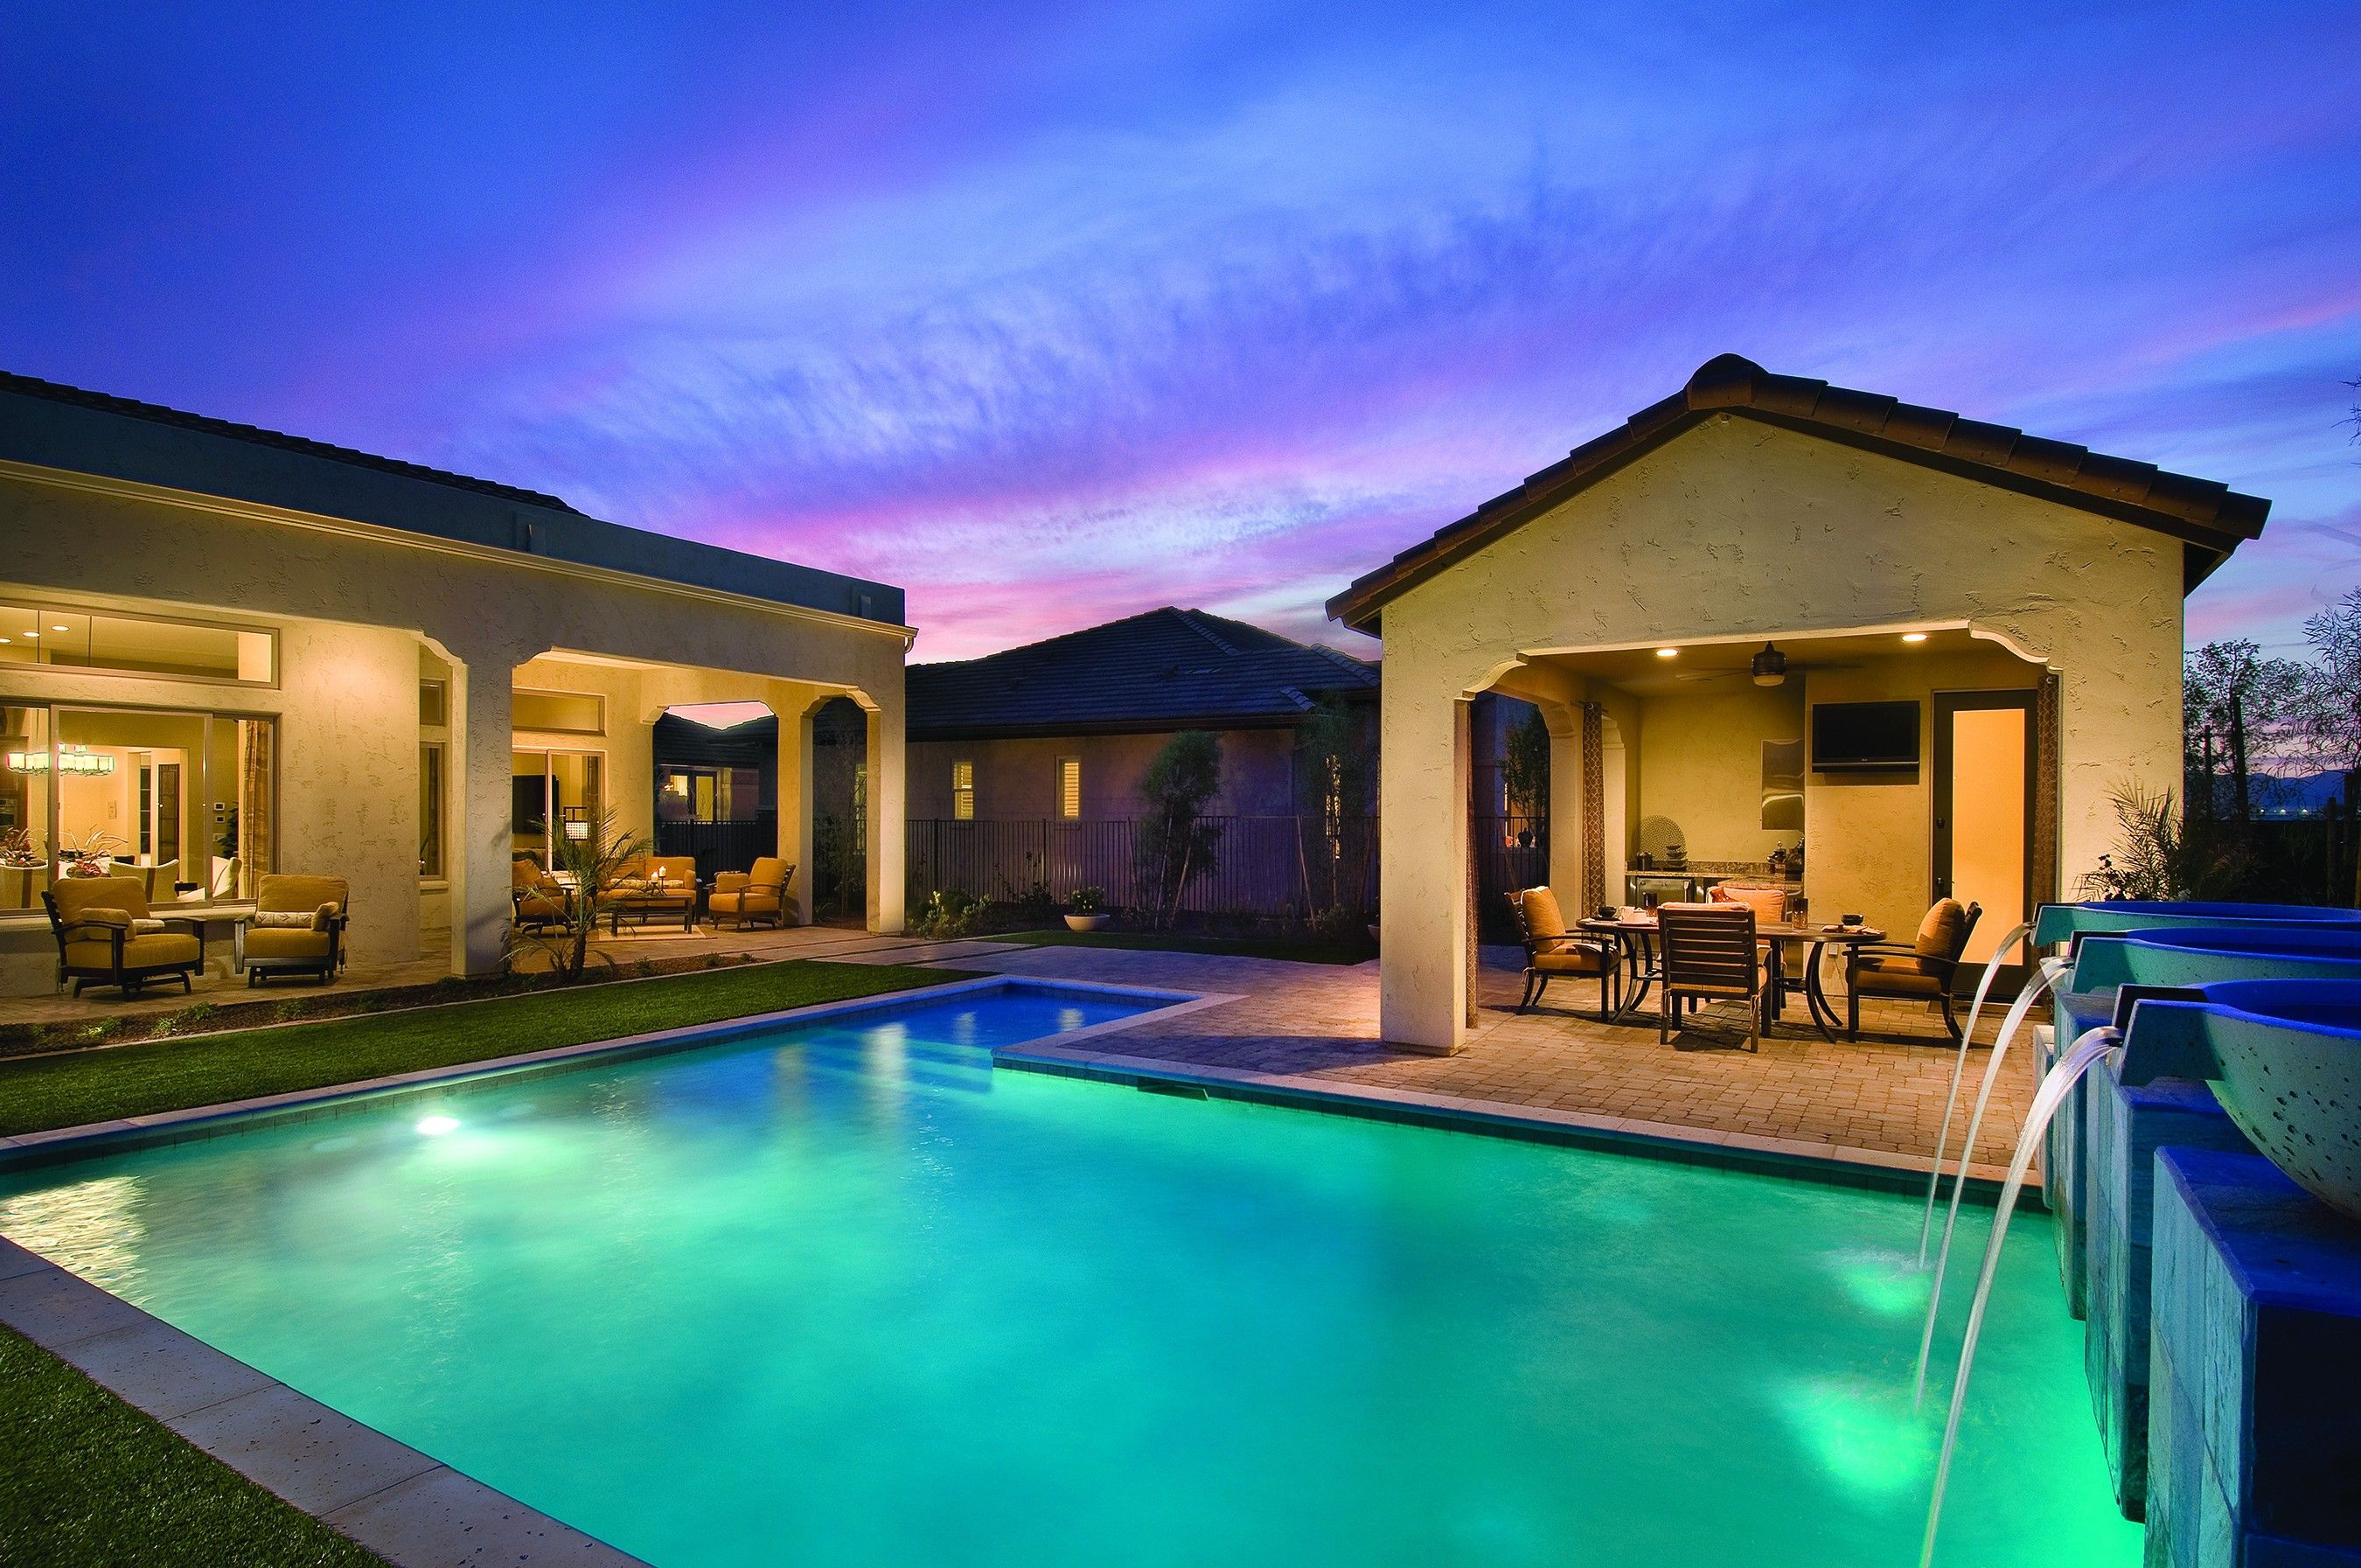 Covered Patio Casita And Relaxing Pool Sonata Model Home At Pebblecreek In Goodyear